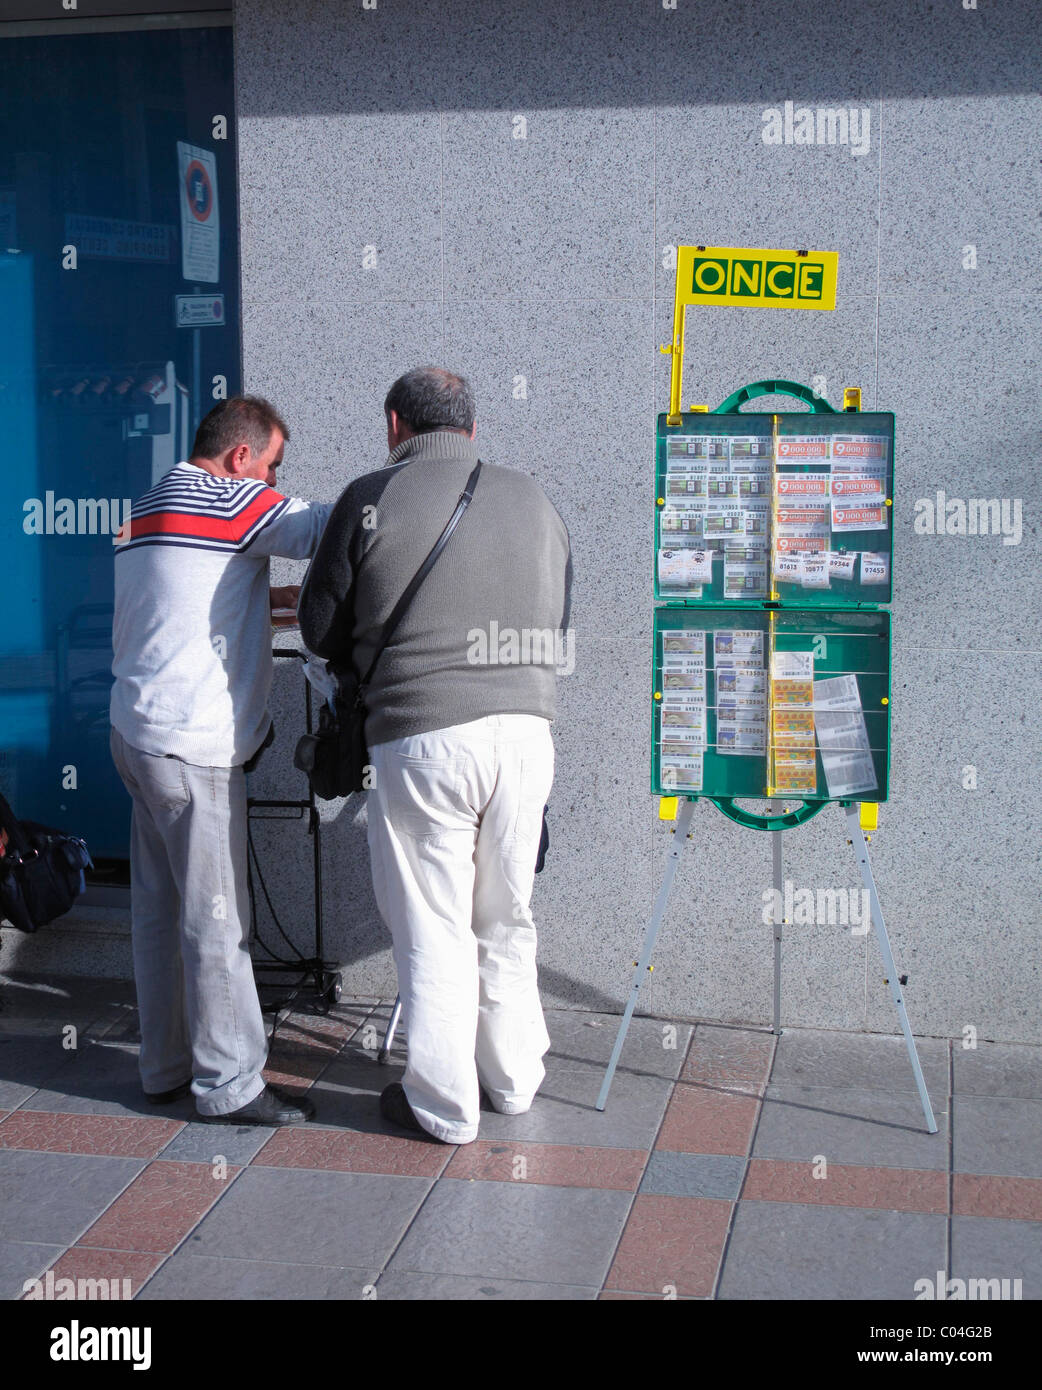 Blind lottery ticket seller belonging to ONCE organization selling ticket to client. - Stock Image